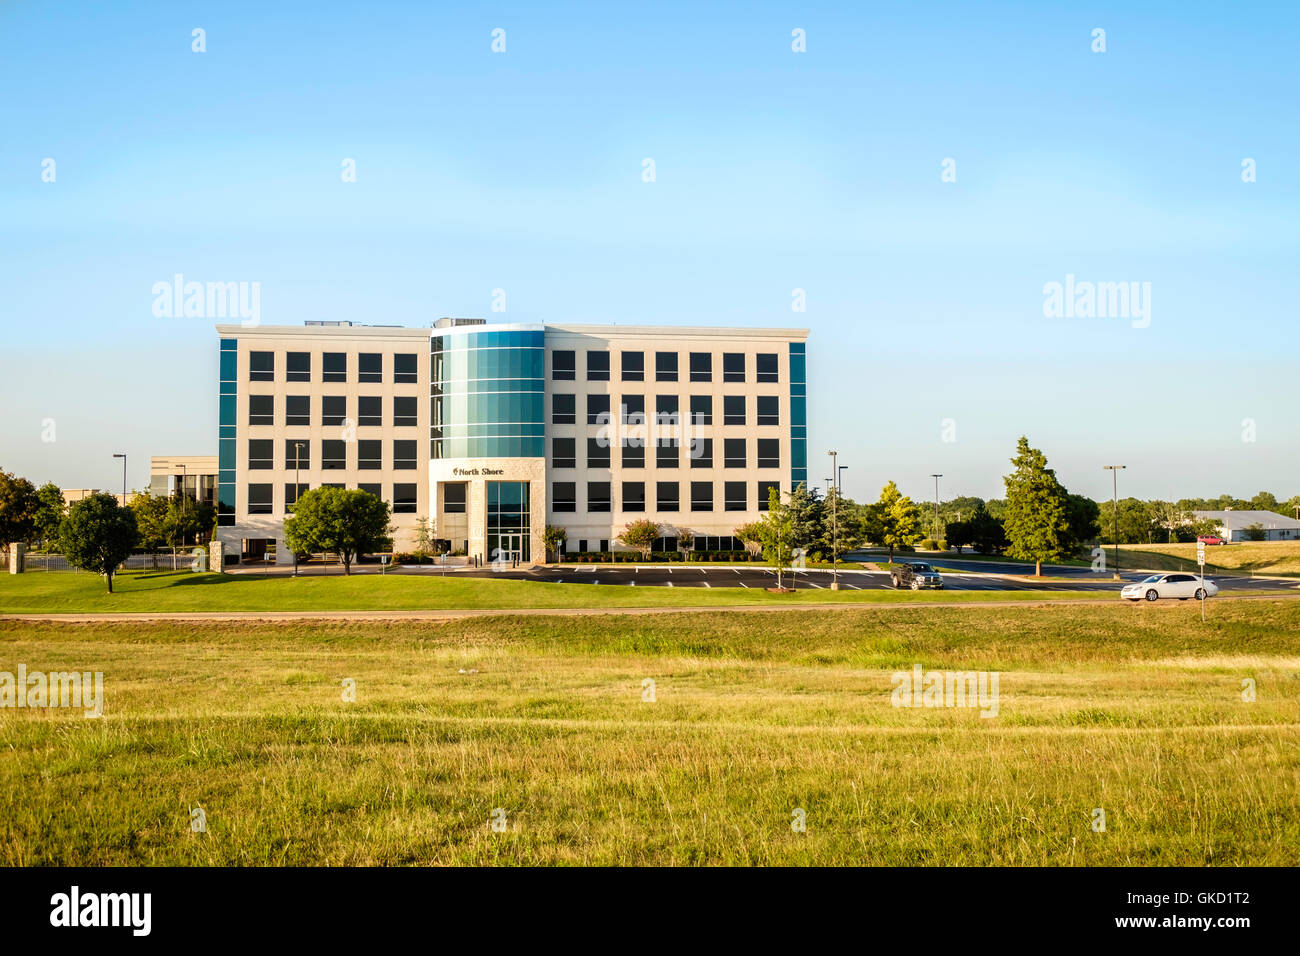 The North Shore office building at 10900 Hefner Pointe Dr. in north Oklahoma City, Oklahoma, USA. - Stock Image